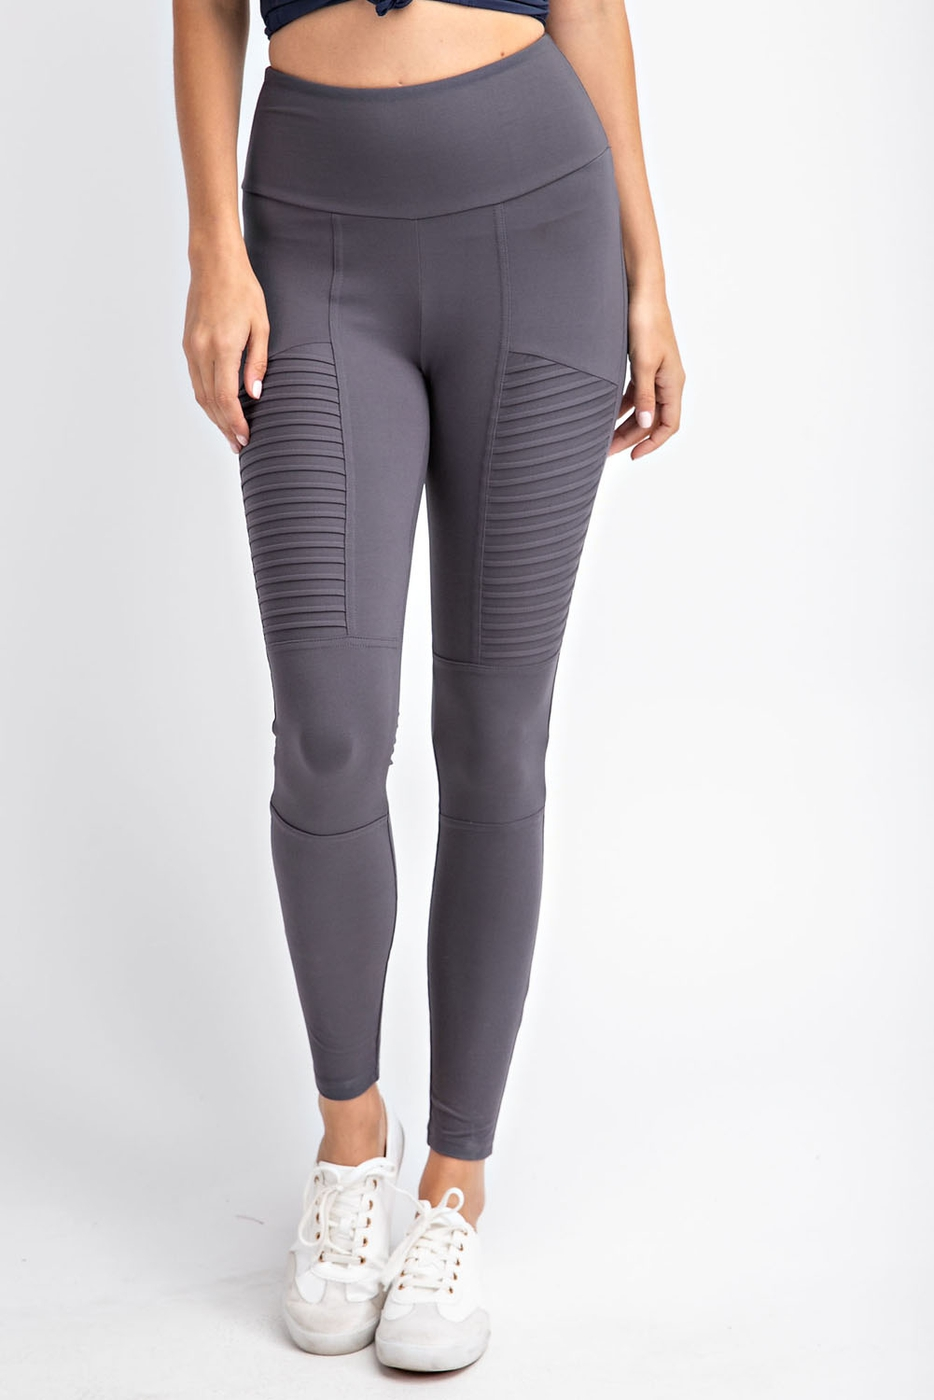 PLUS SIZE HIGH WAIST SOLID LEGGINGS - orangeshine.com